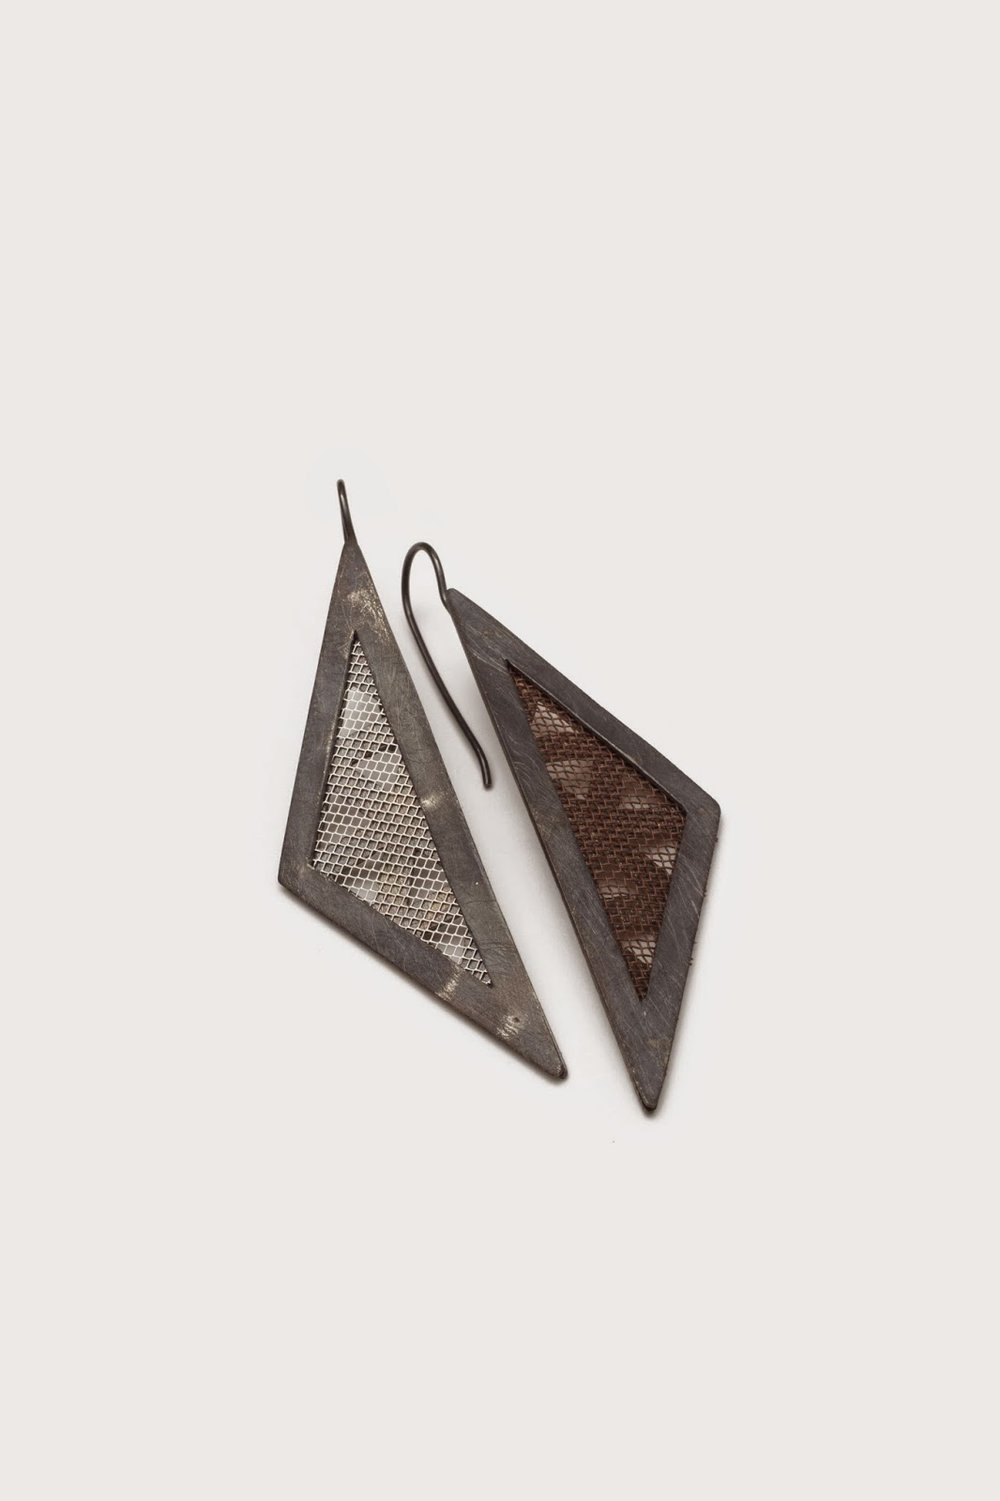 Mesh Isosoles Triangle Earrings; mesh and sterling silver, copper. photo by tiny jeweler photography